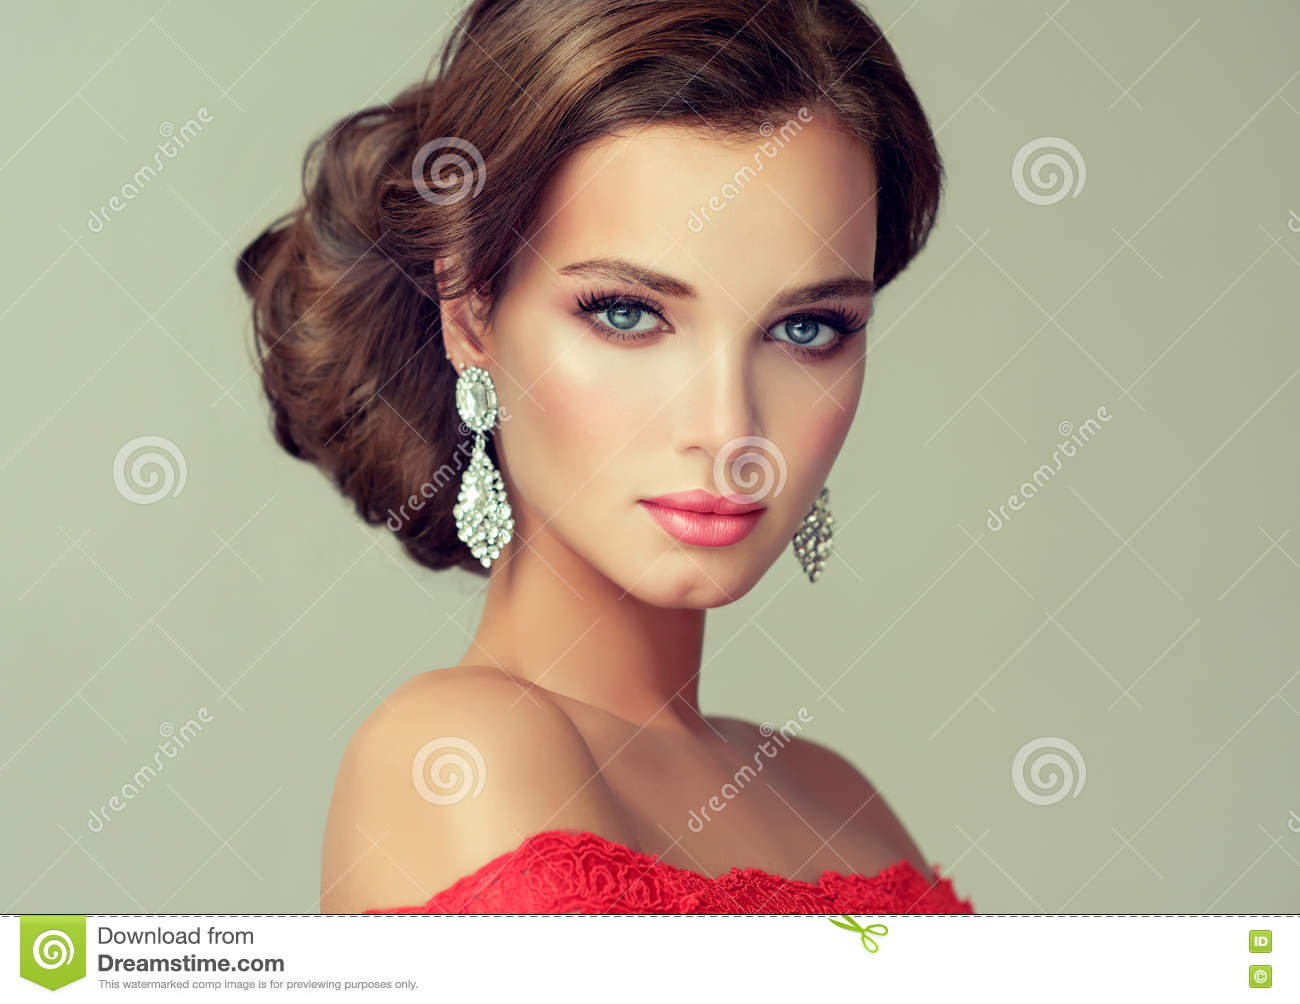 Model In A Delicate Make Up Dressed In A Red Gown Stock Image